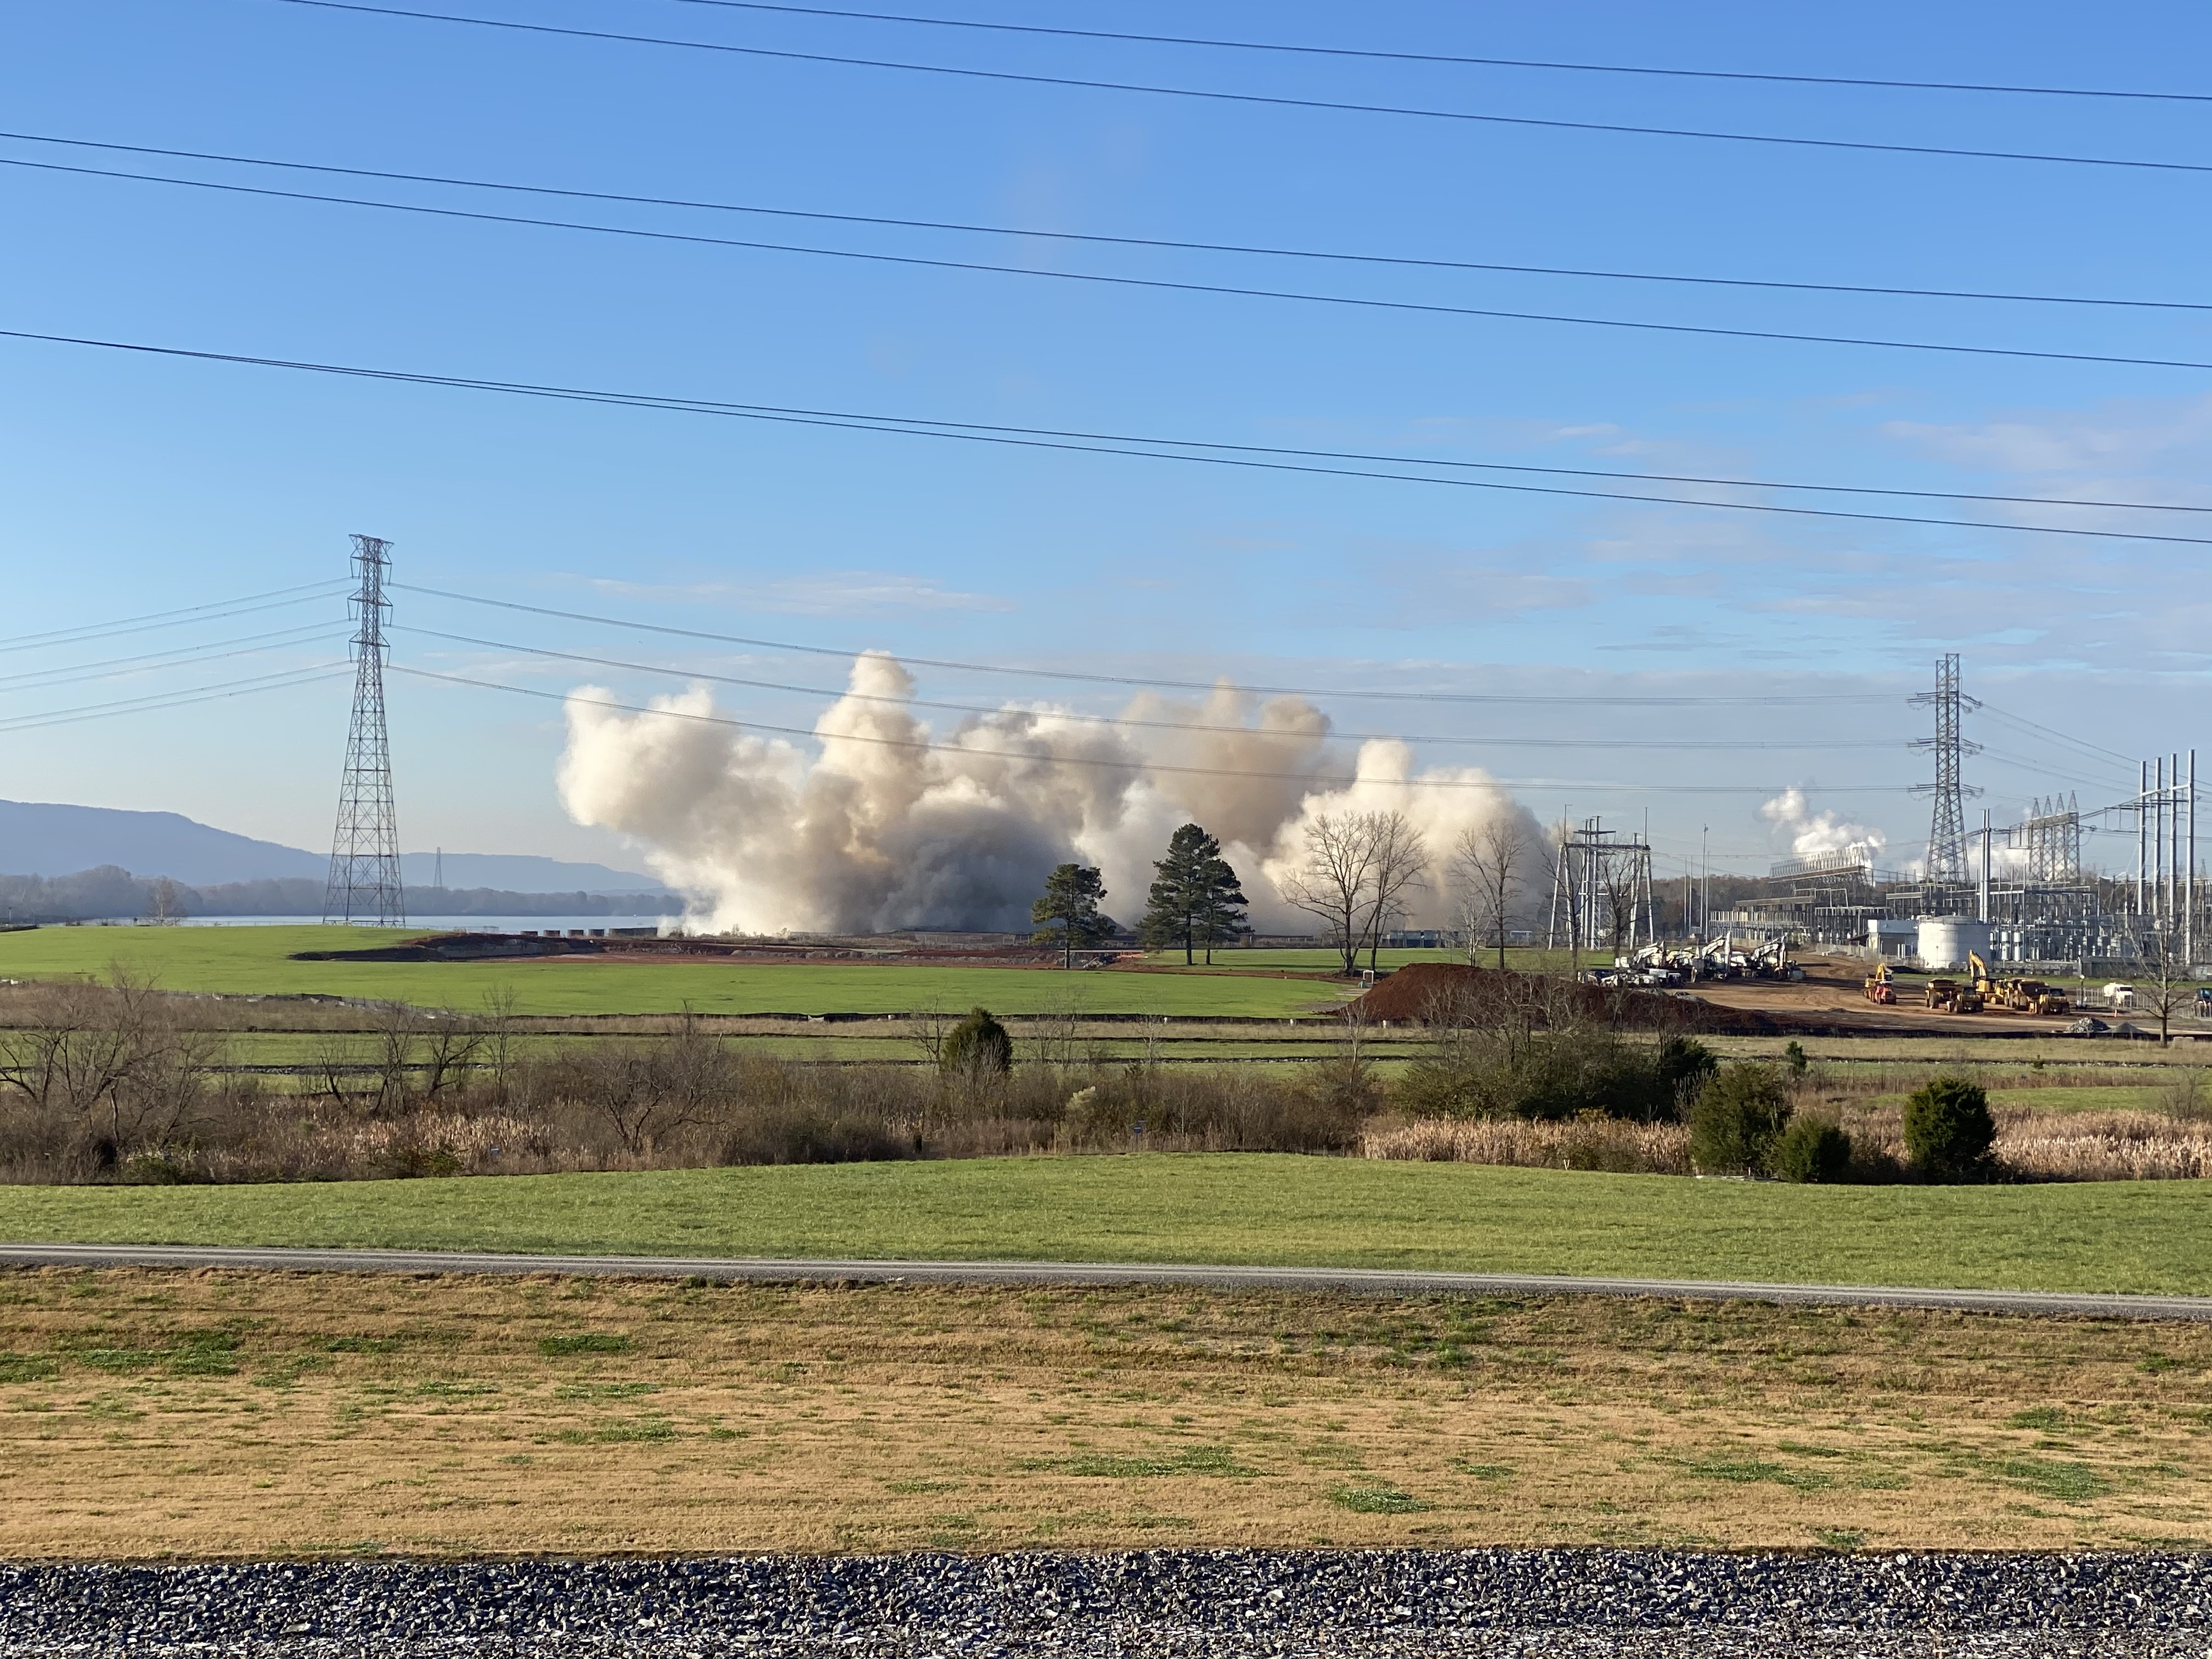 Widows Creek Fossil Plant After Stack Implosion